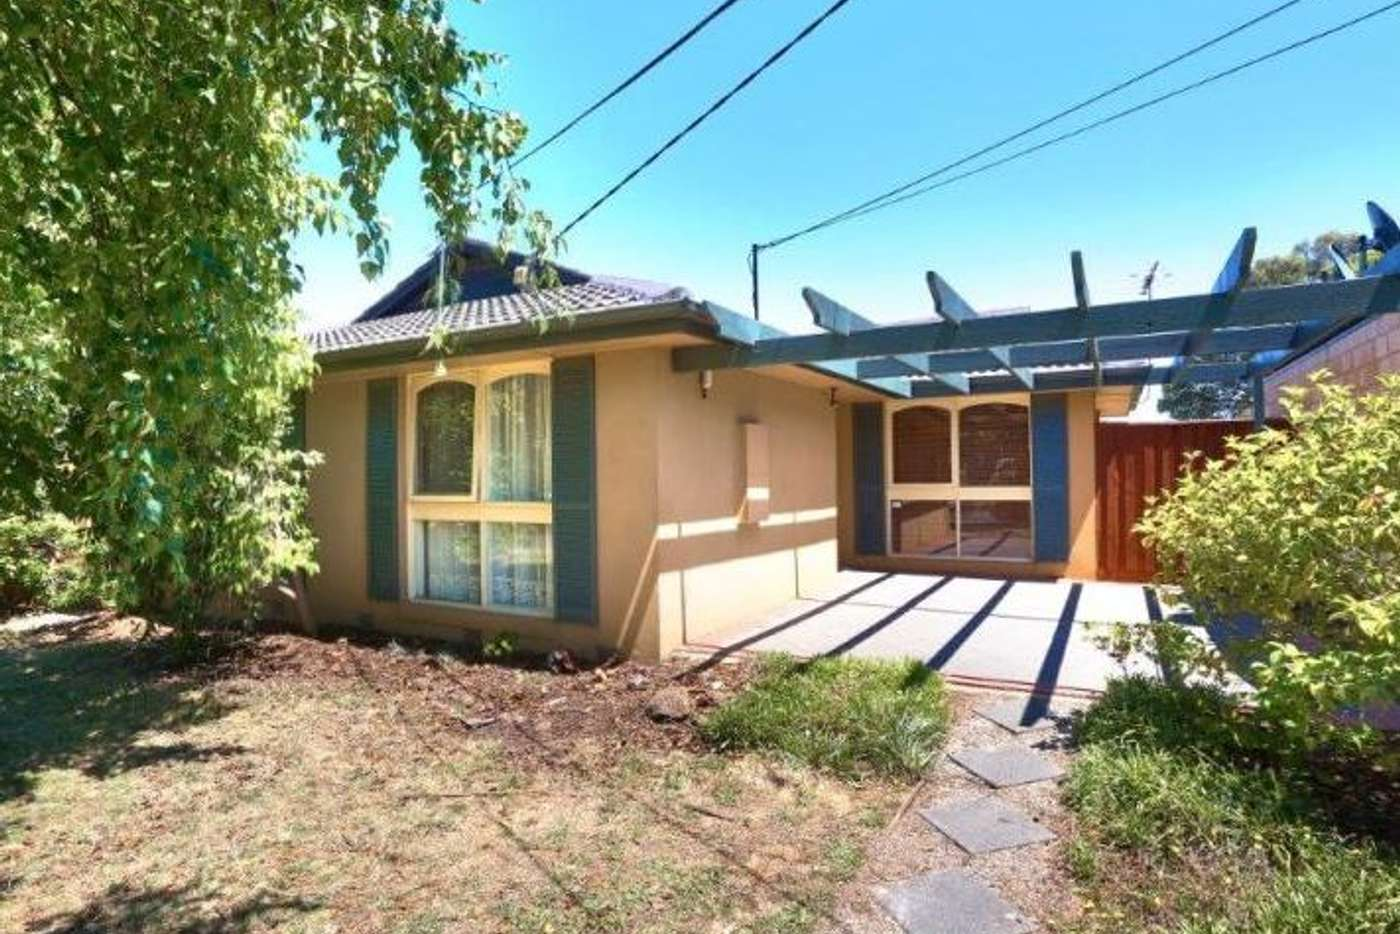 Main view of Homely house listing, 16 Beacon Street, Vermont South VIC 3133